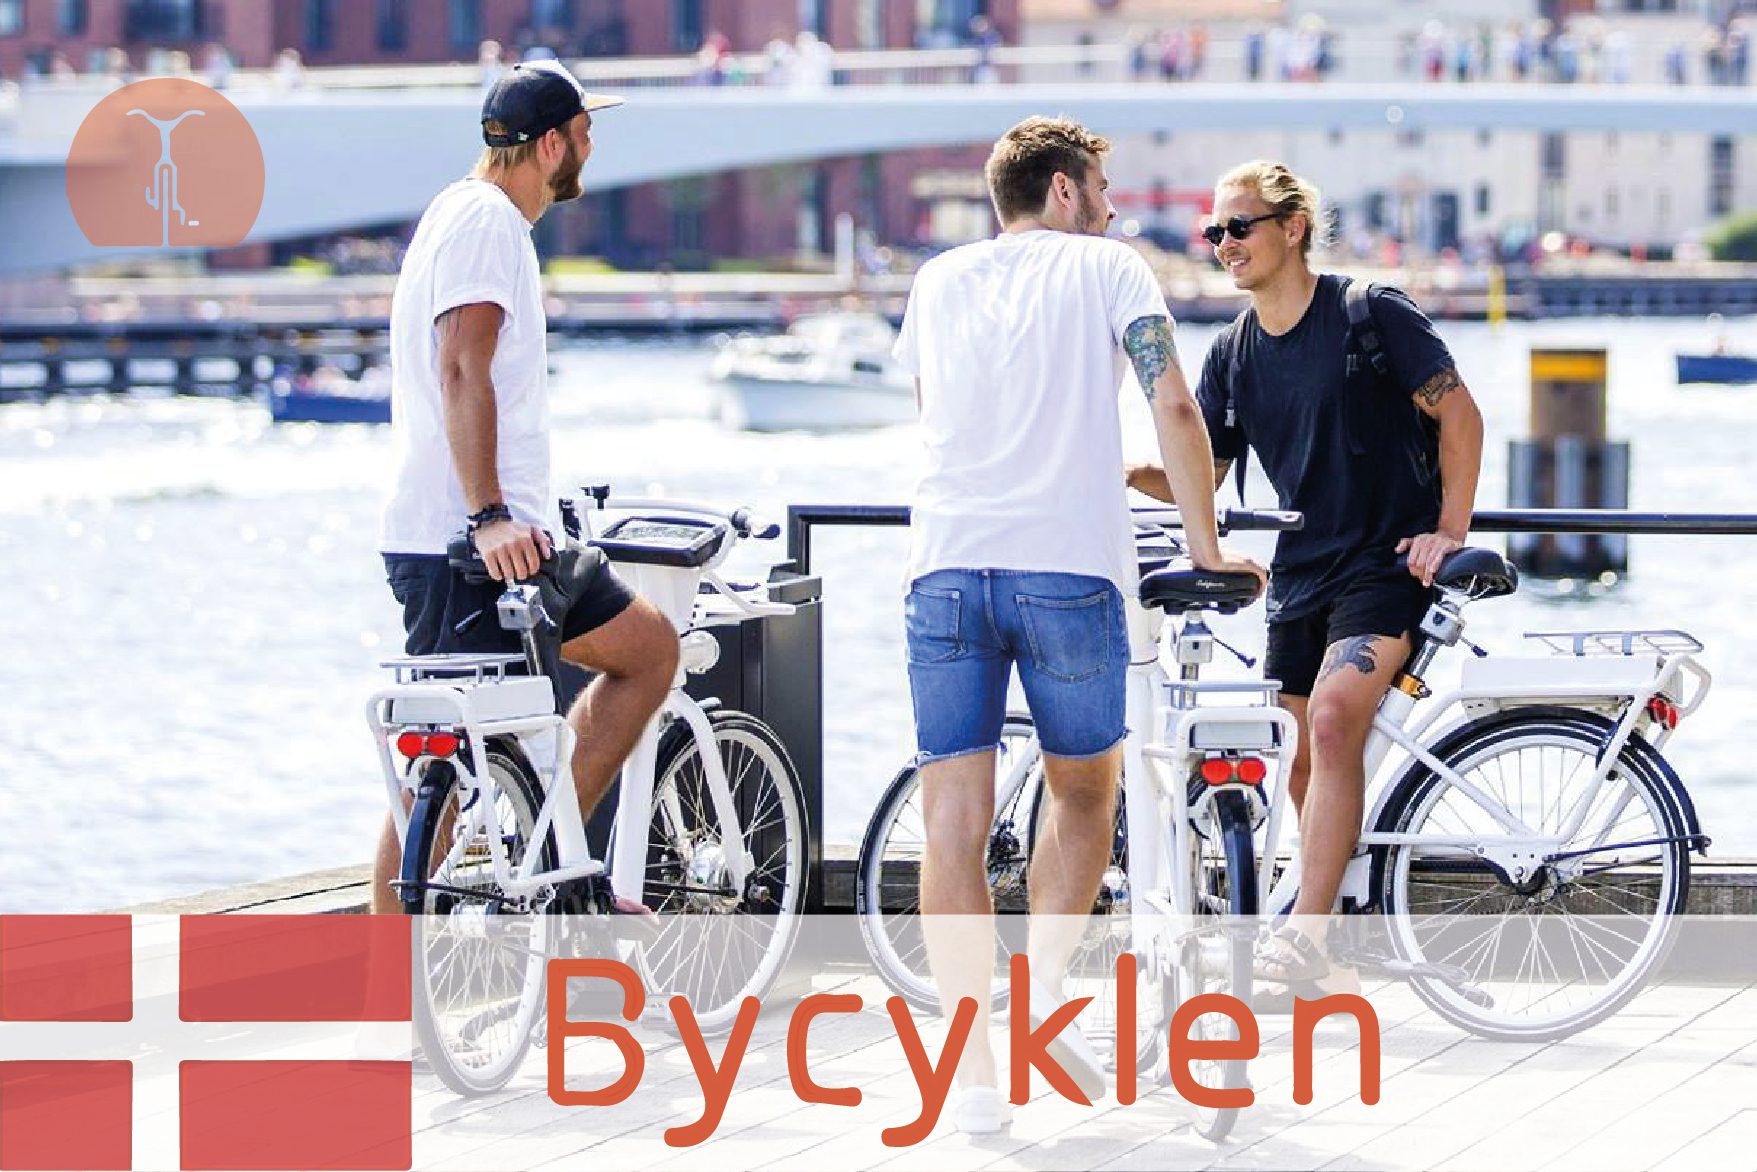 #27 Bycyklen – Bike sharing scheme for city commuting - CIRCit Nord